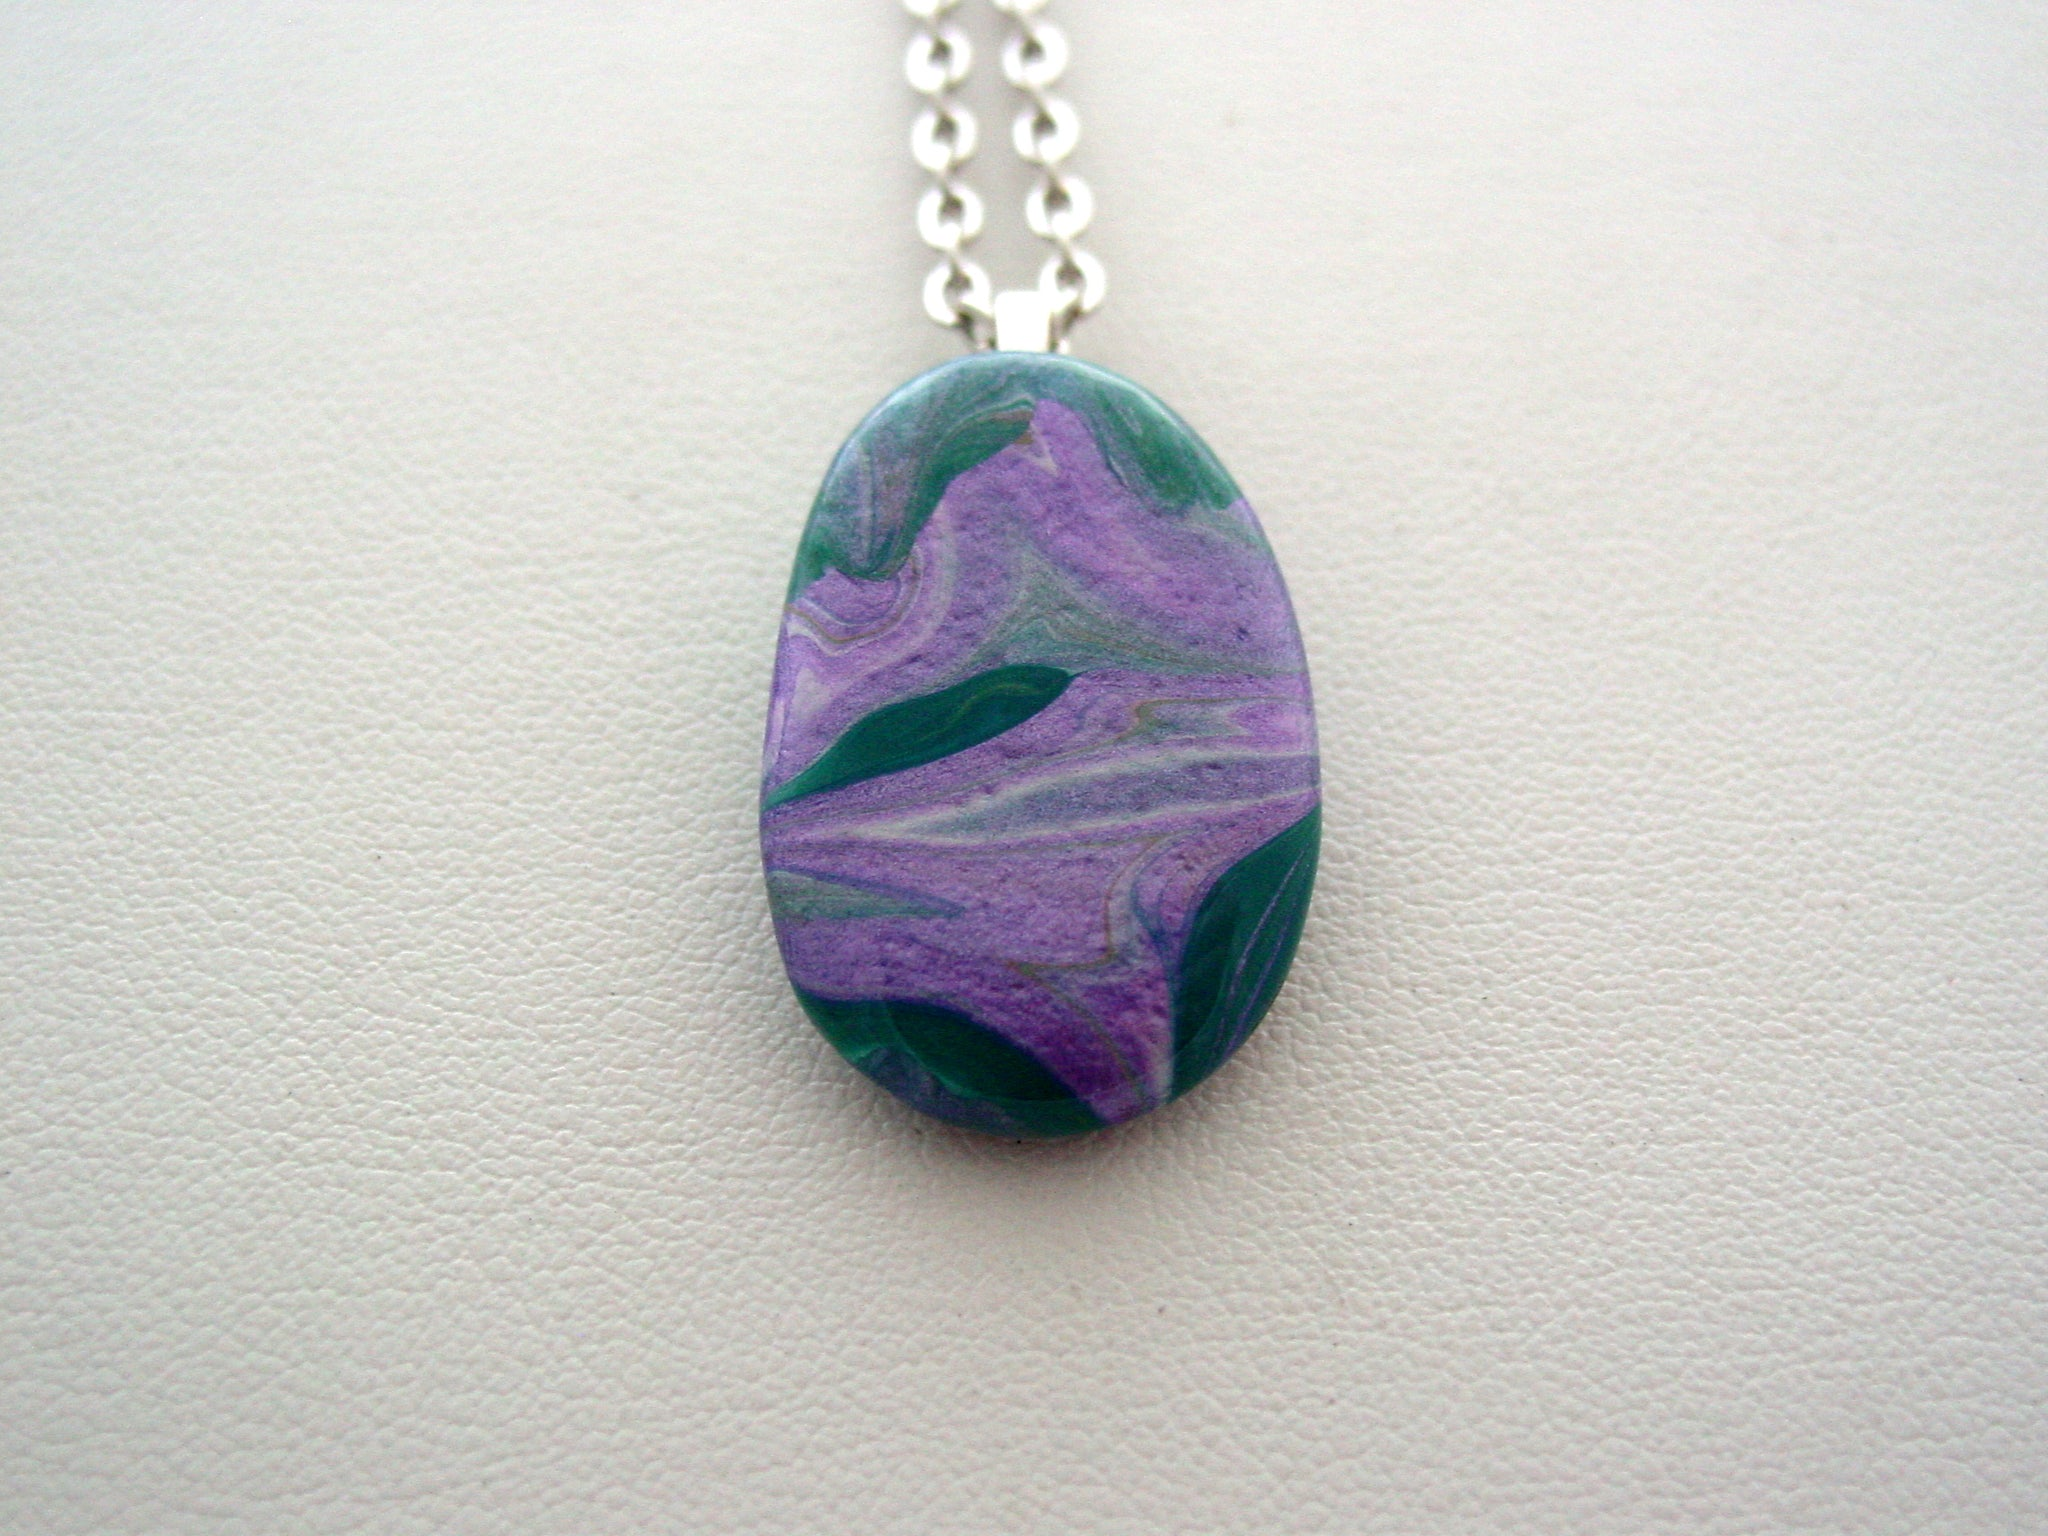 River Rock Jewelry Purple Metallic Teal Wearable Fluid Art Necklace Original Alaskan Rock Organic Jewelry Dirty Pour Necklace With Chain (rra14)